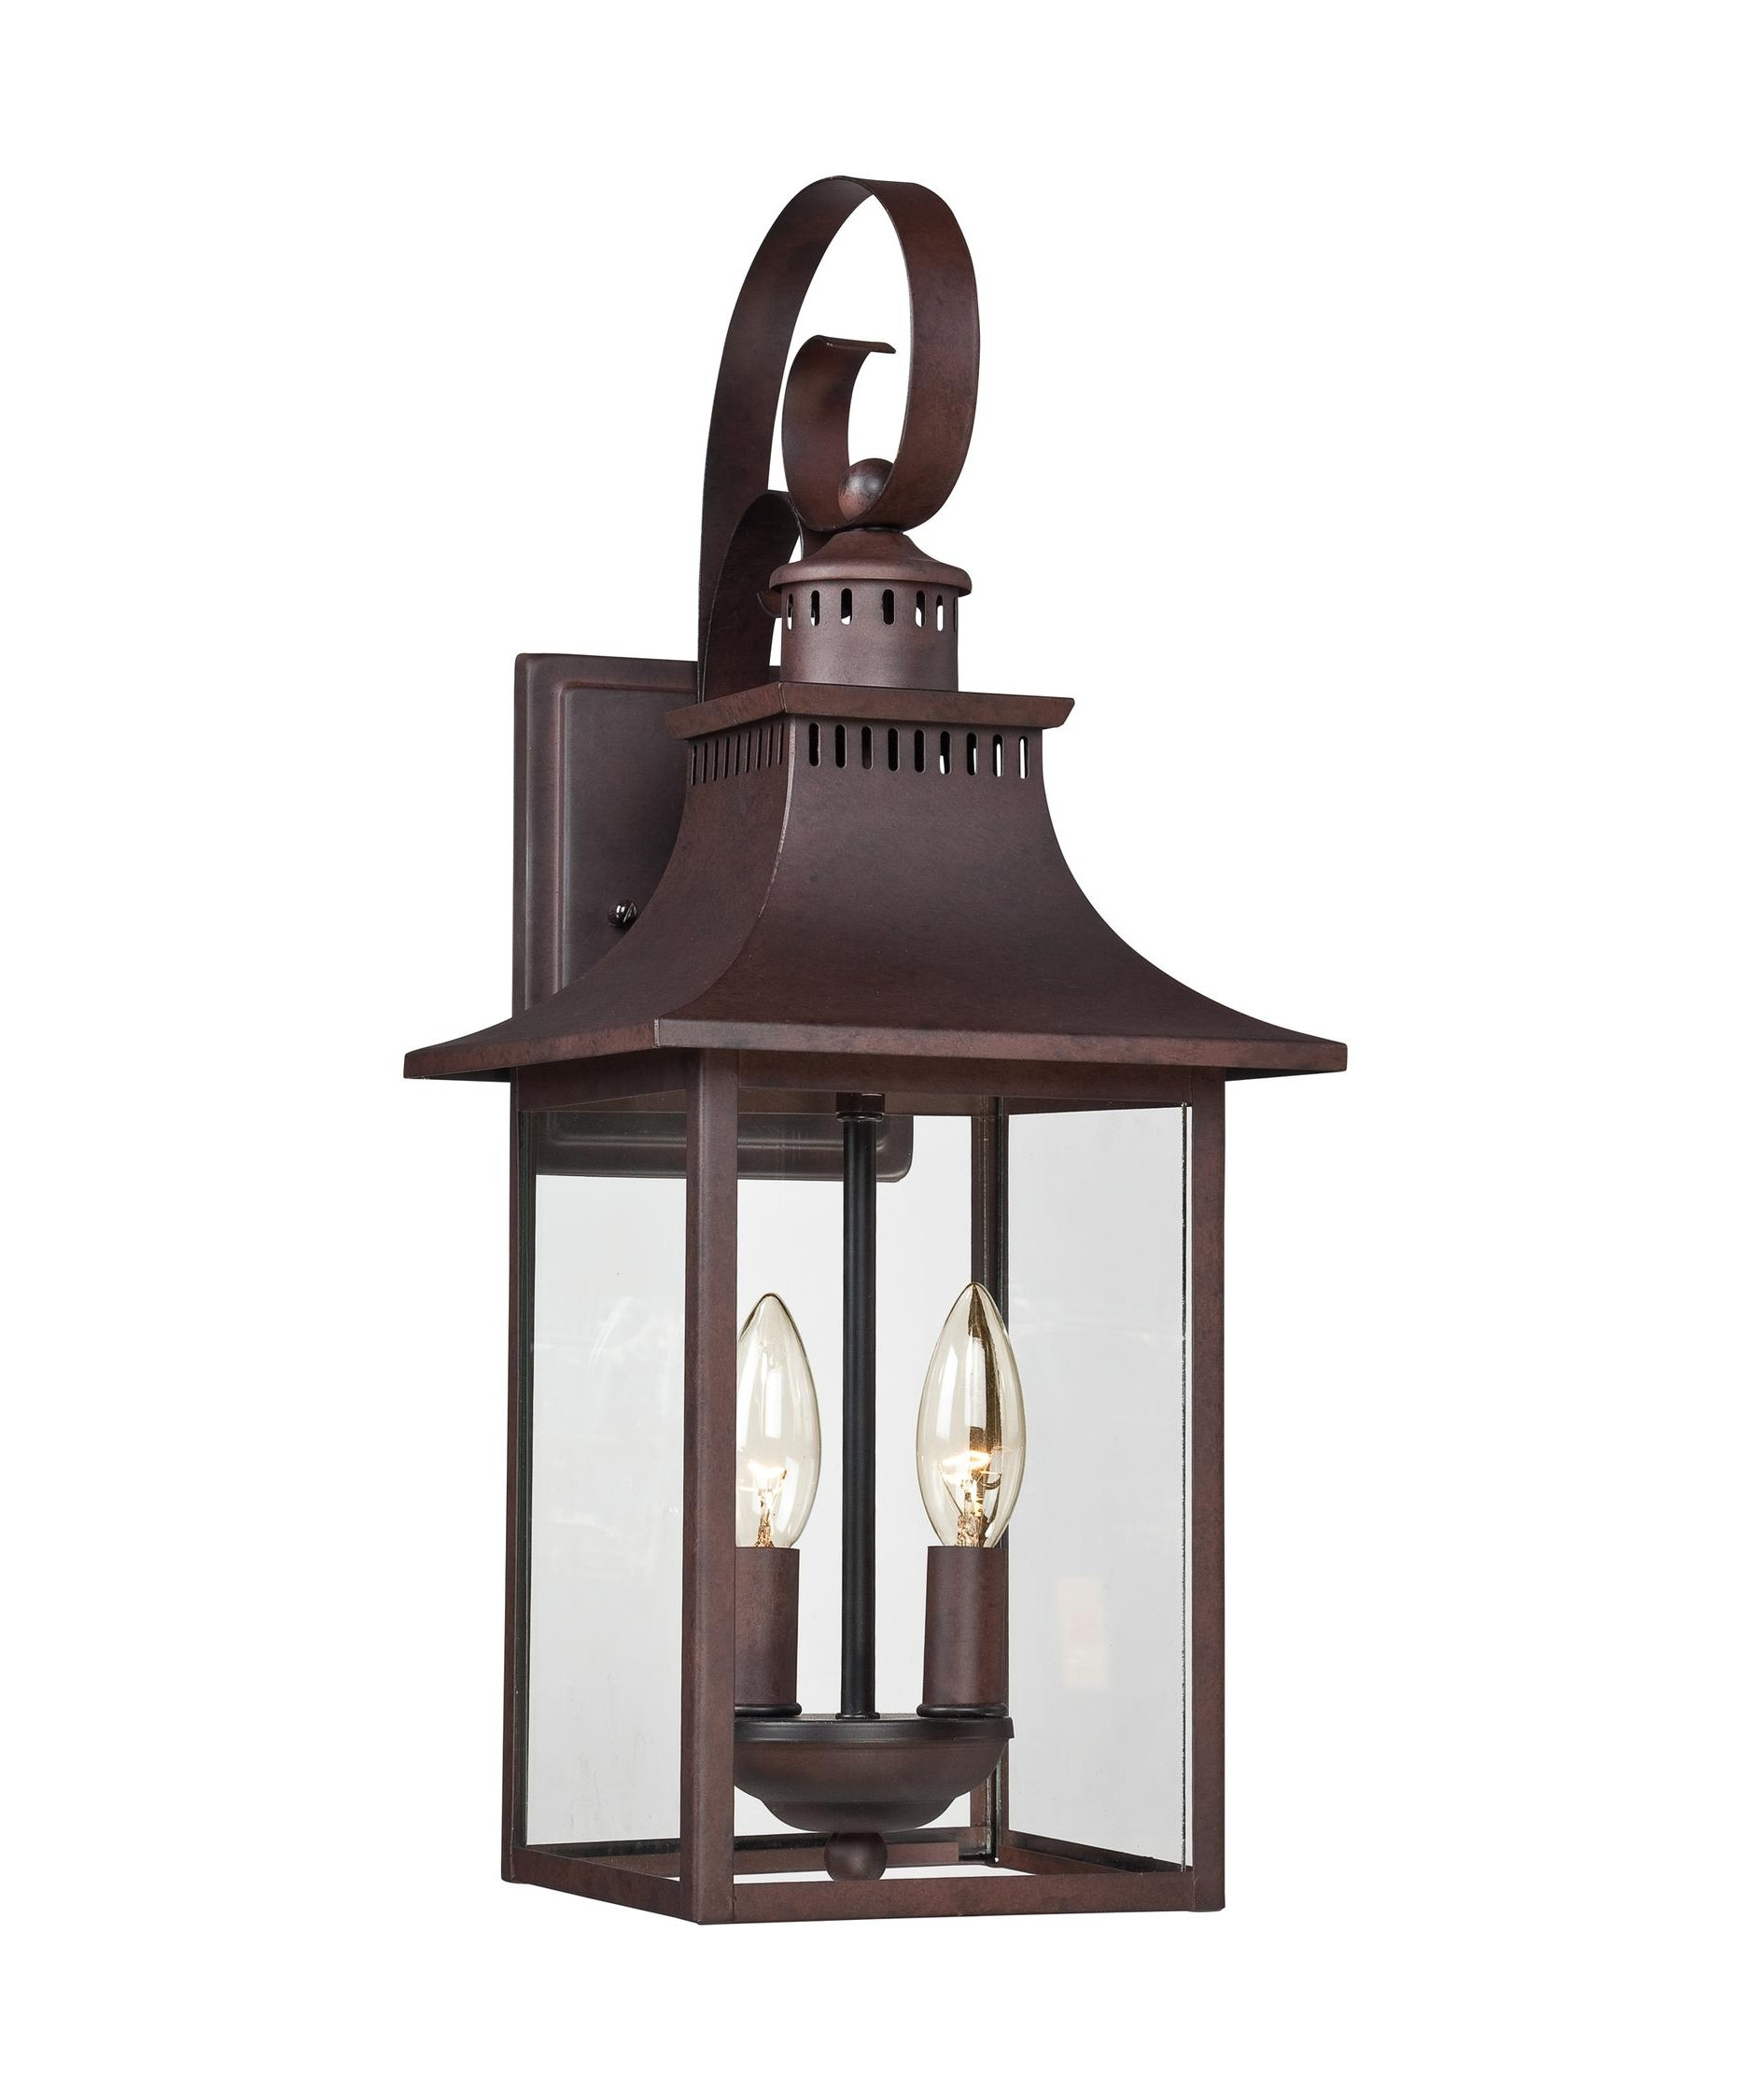 2019 Quoizel Ccr8408 Chancellor 8 Inch Wide 2 Light Outdoor Wall Light Throughout Copper Outdoor Lanterns (Gallery 13 of 20)